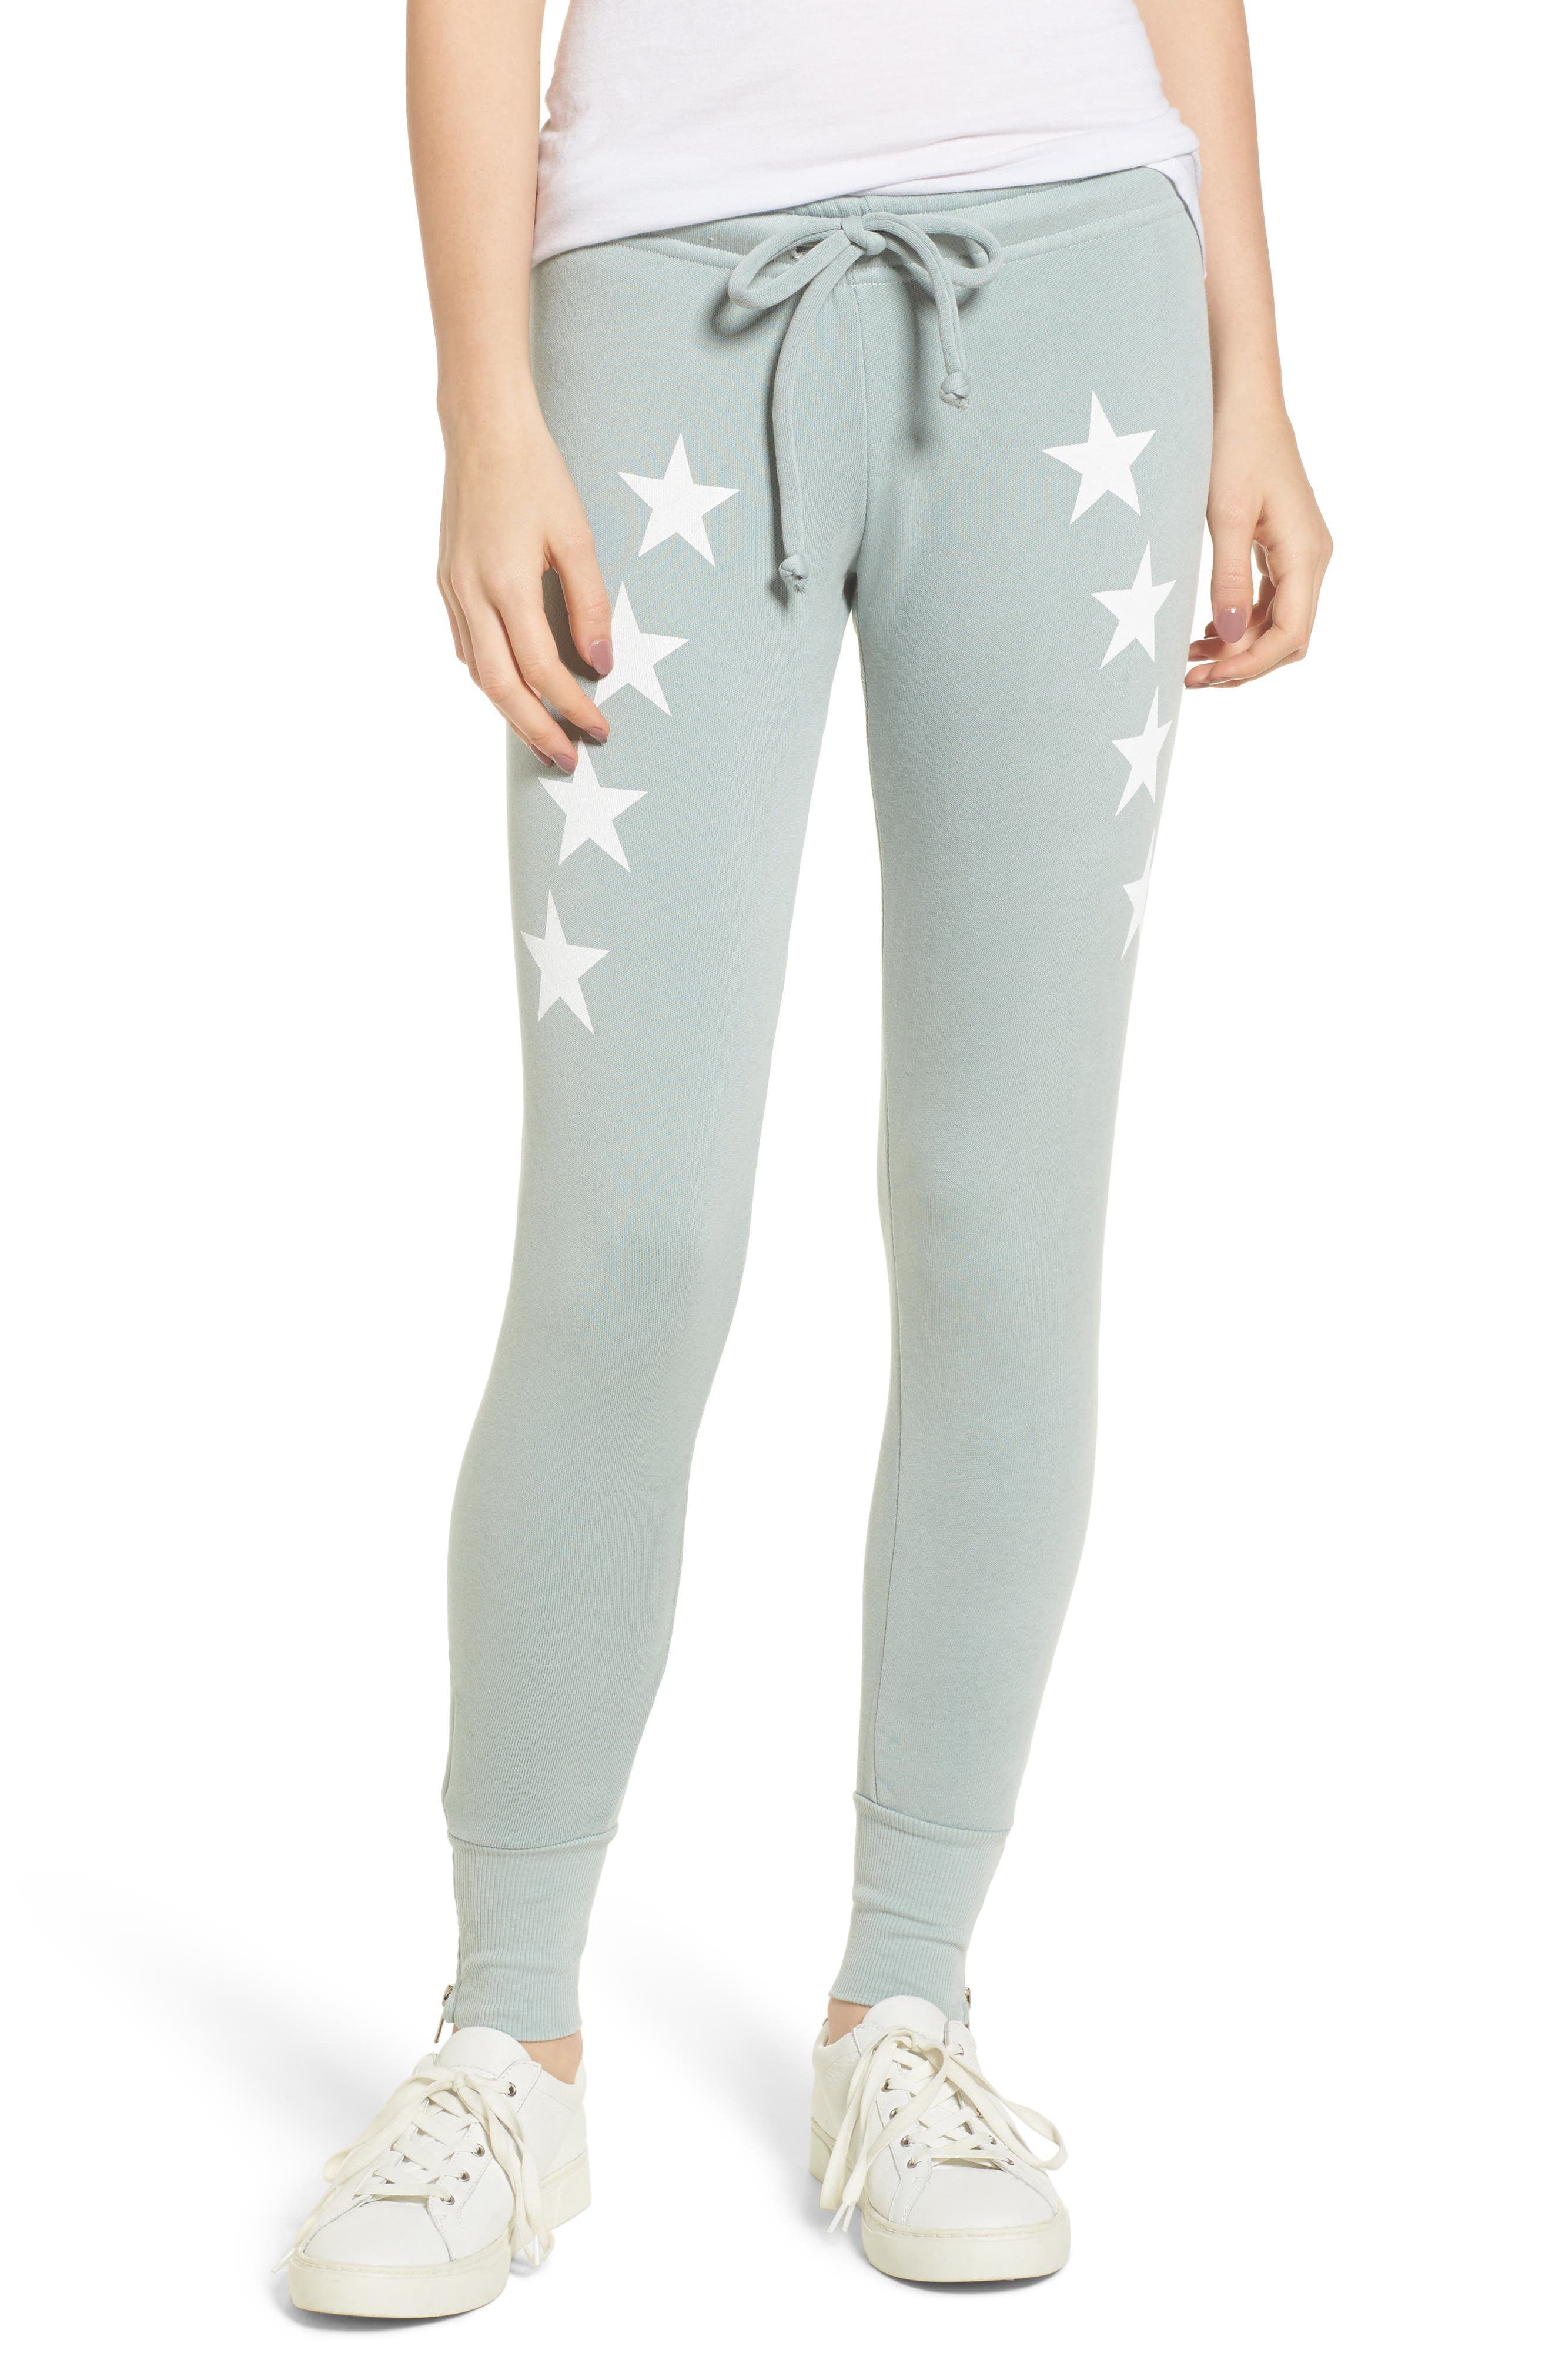 Alternate Image 1 Selected - Wildfox Cosmos Fame Jogger Pants